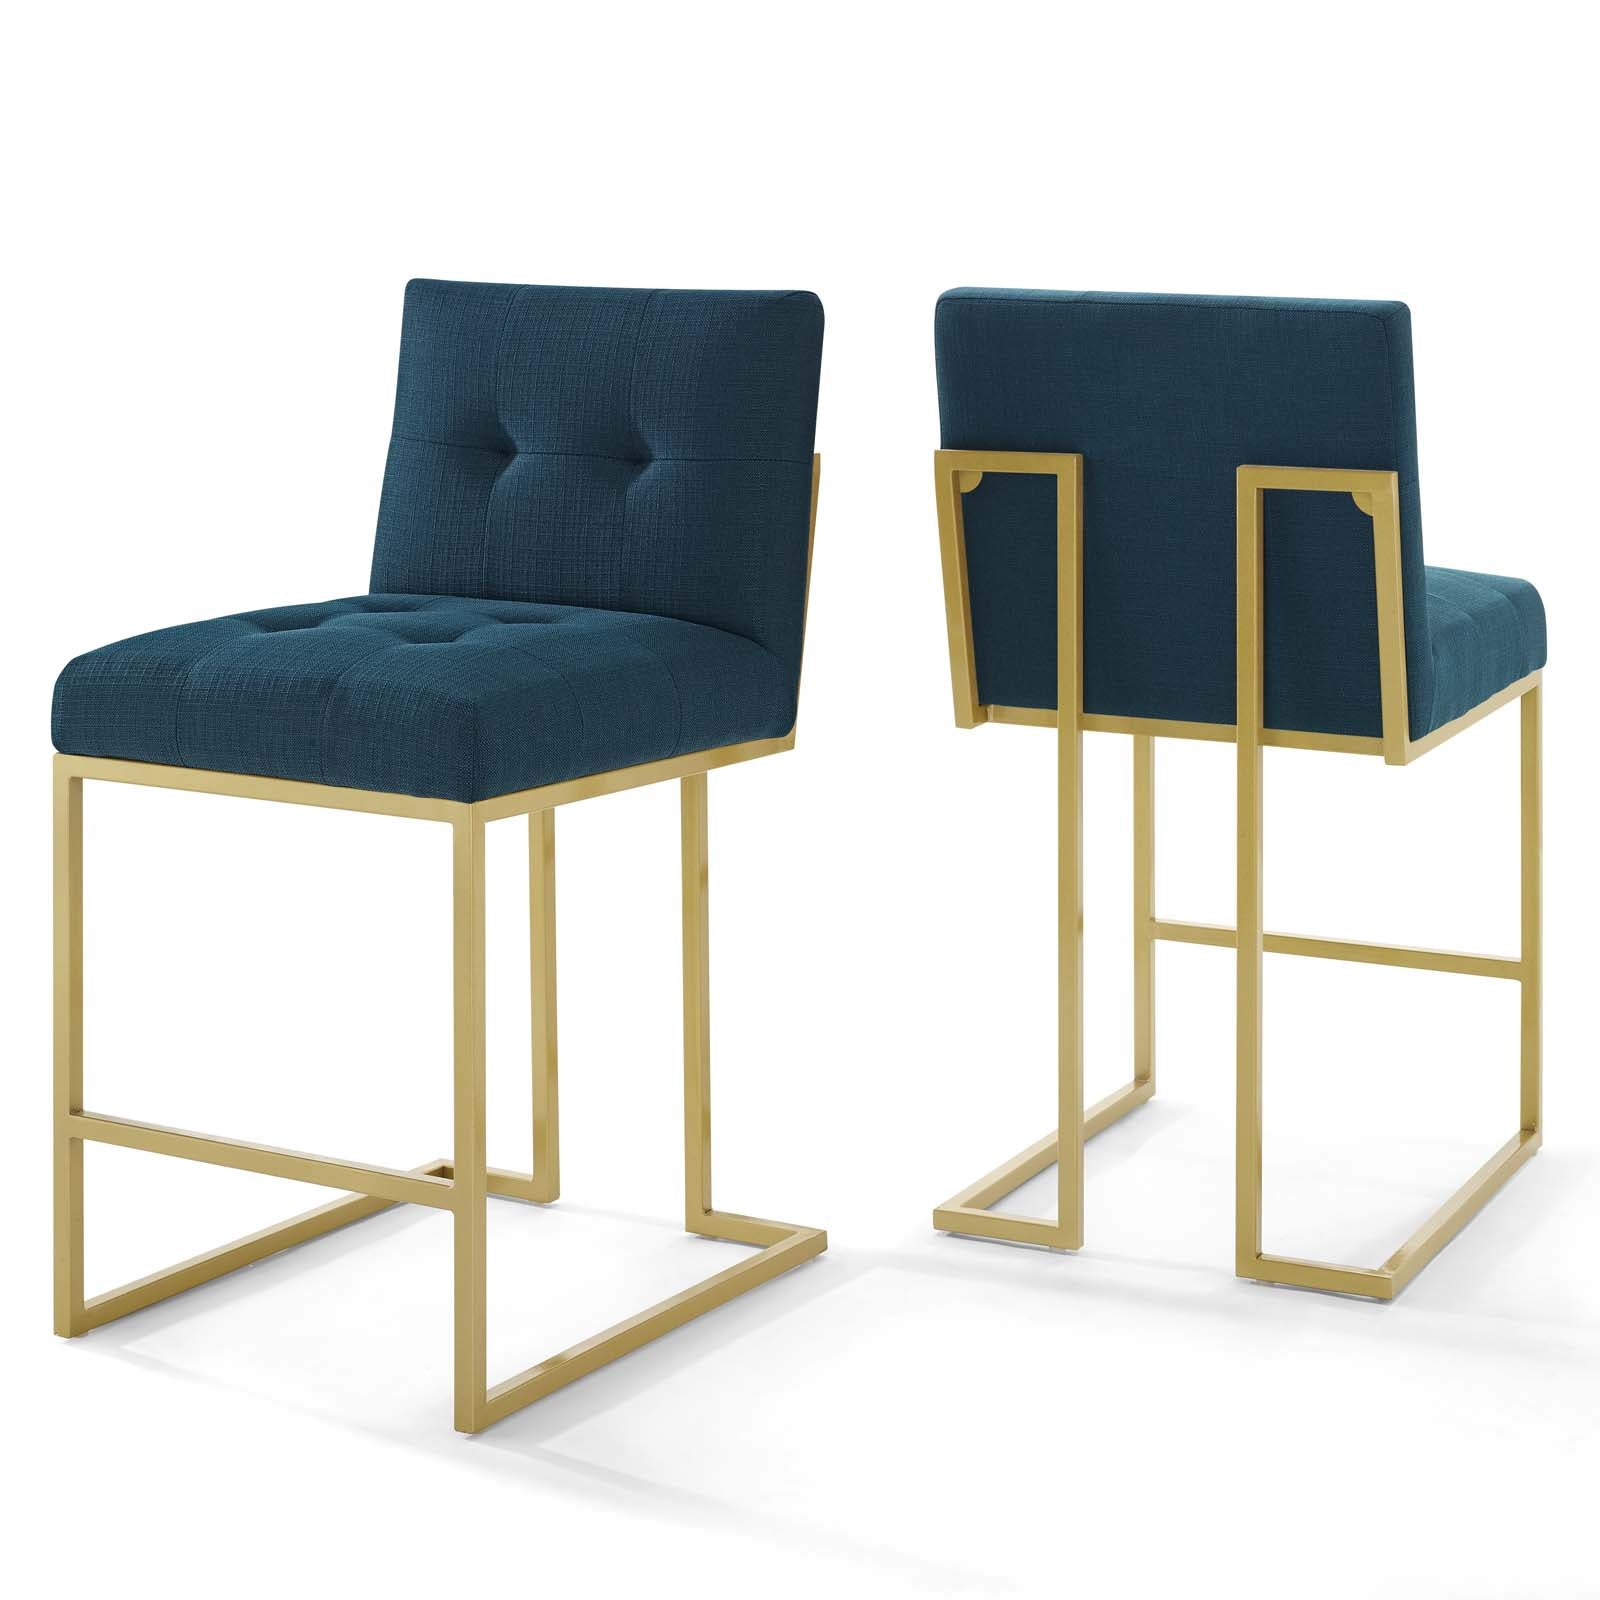 Privy Gold Stainless Steel Upholstered Fabric Counter Stool Set of 2